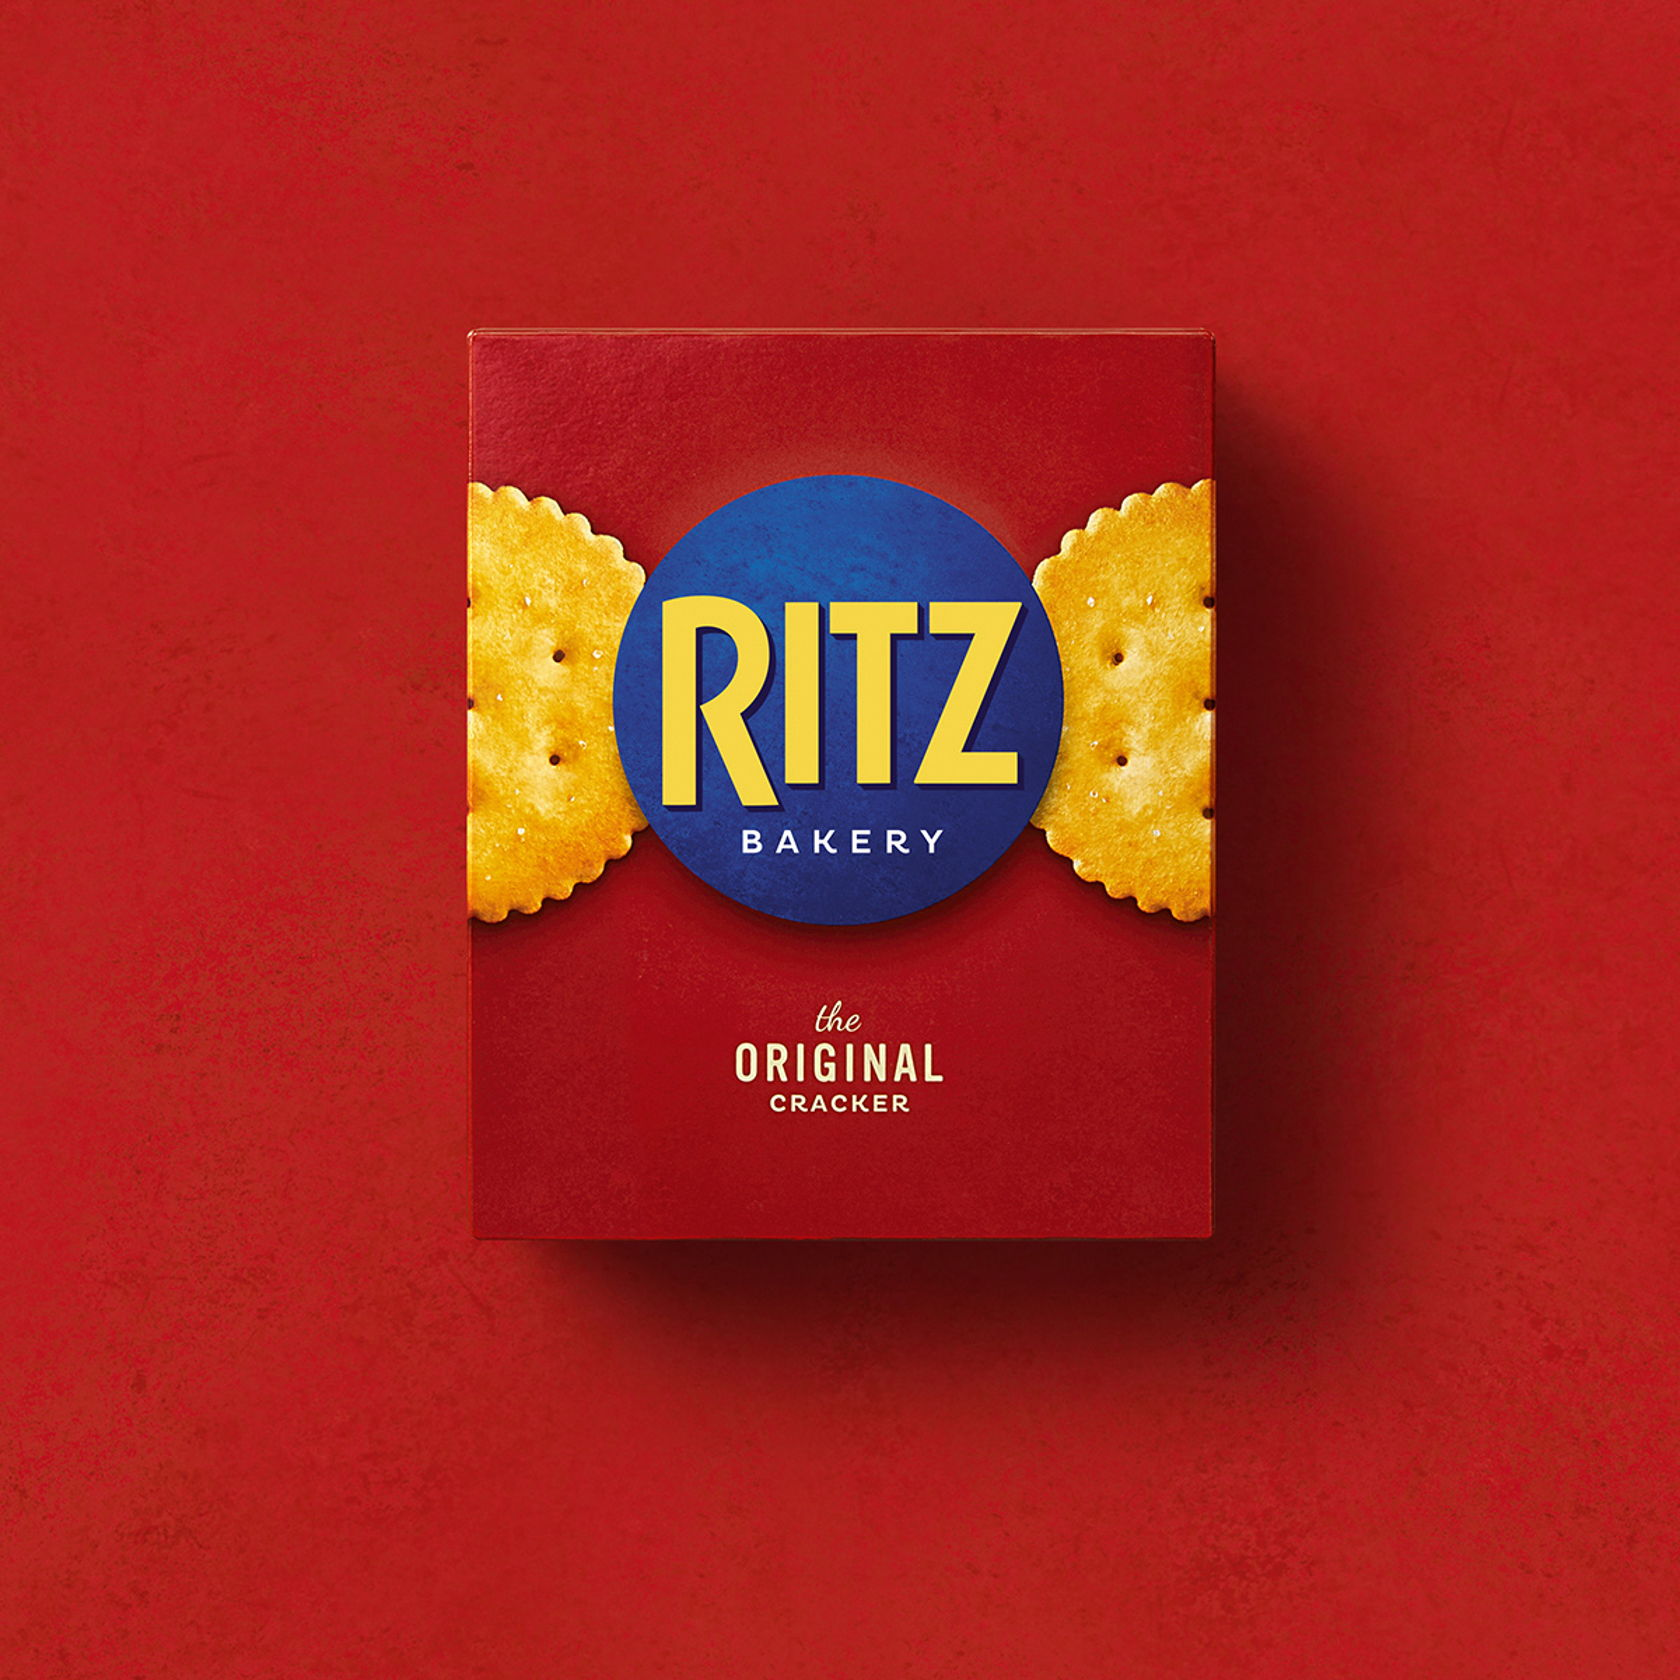 Transformed By Time And History >> Bulletproof Keeps Putting The Glitz Back In Ritz Dieline